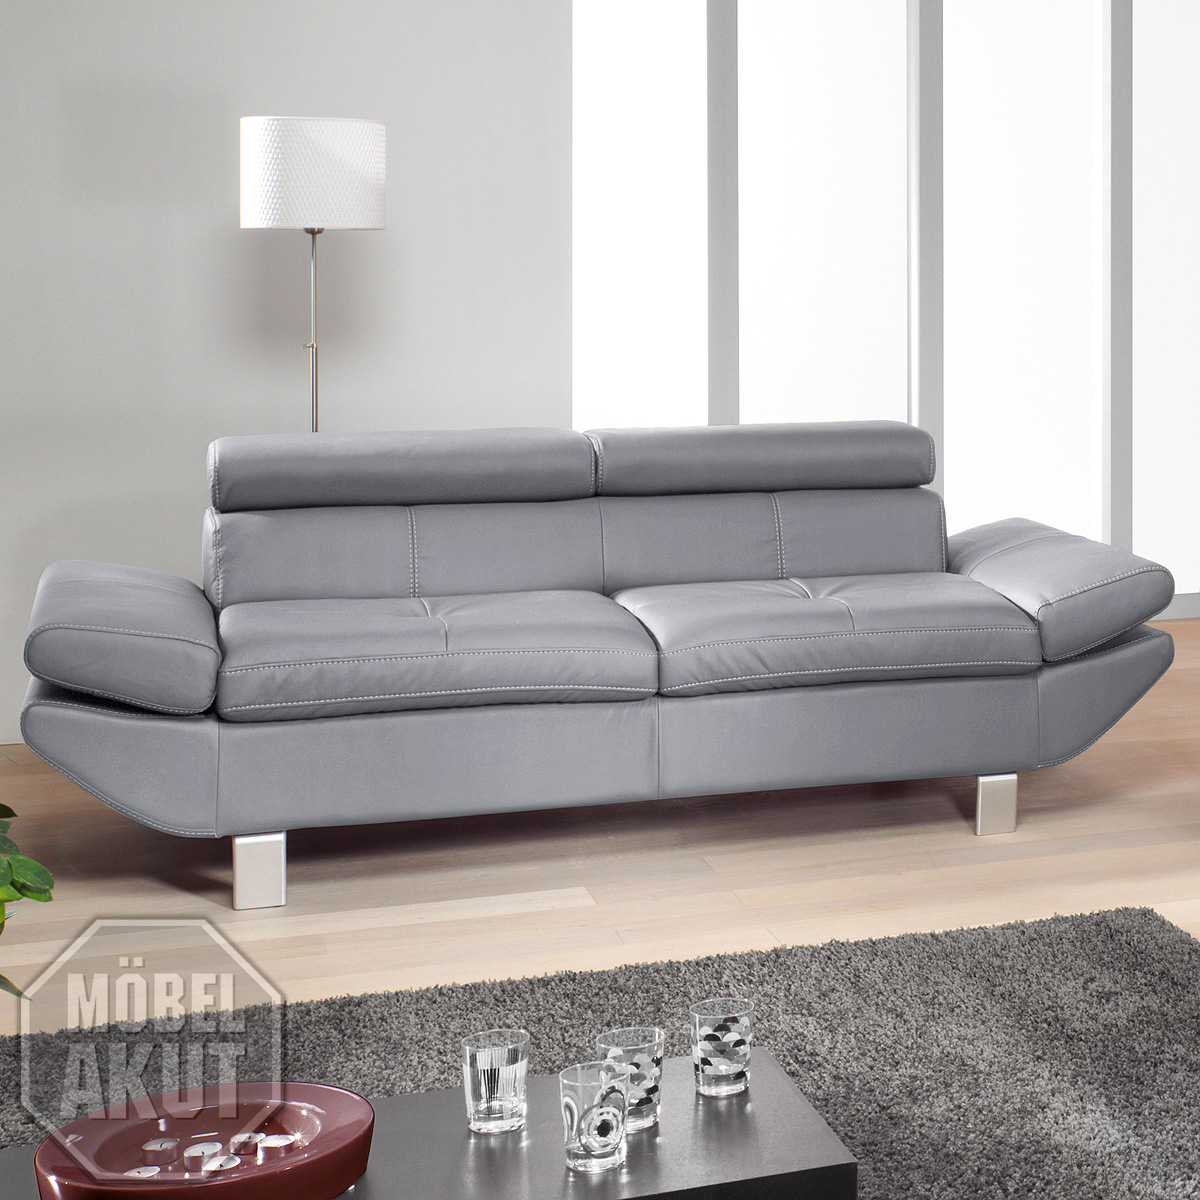 3er sofa carrier polsterm bel mit relaxfunktion in grau 223 cm ebay. Black Bedroom Furniture Sets. Home Design Ideas